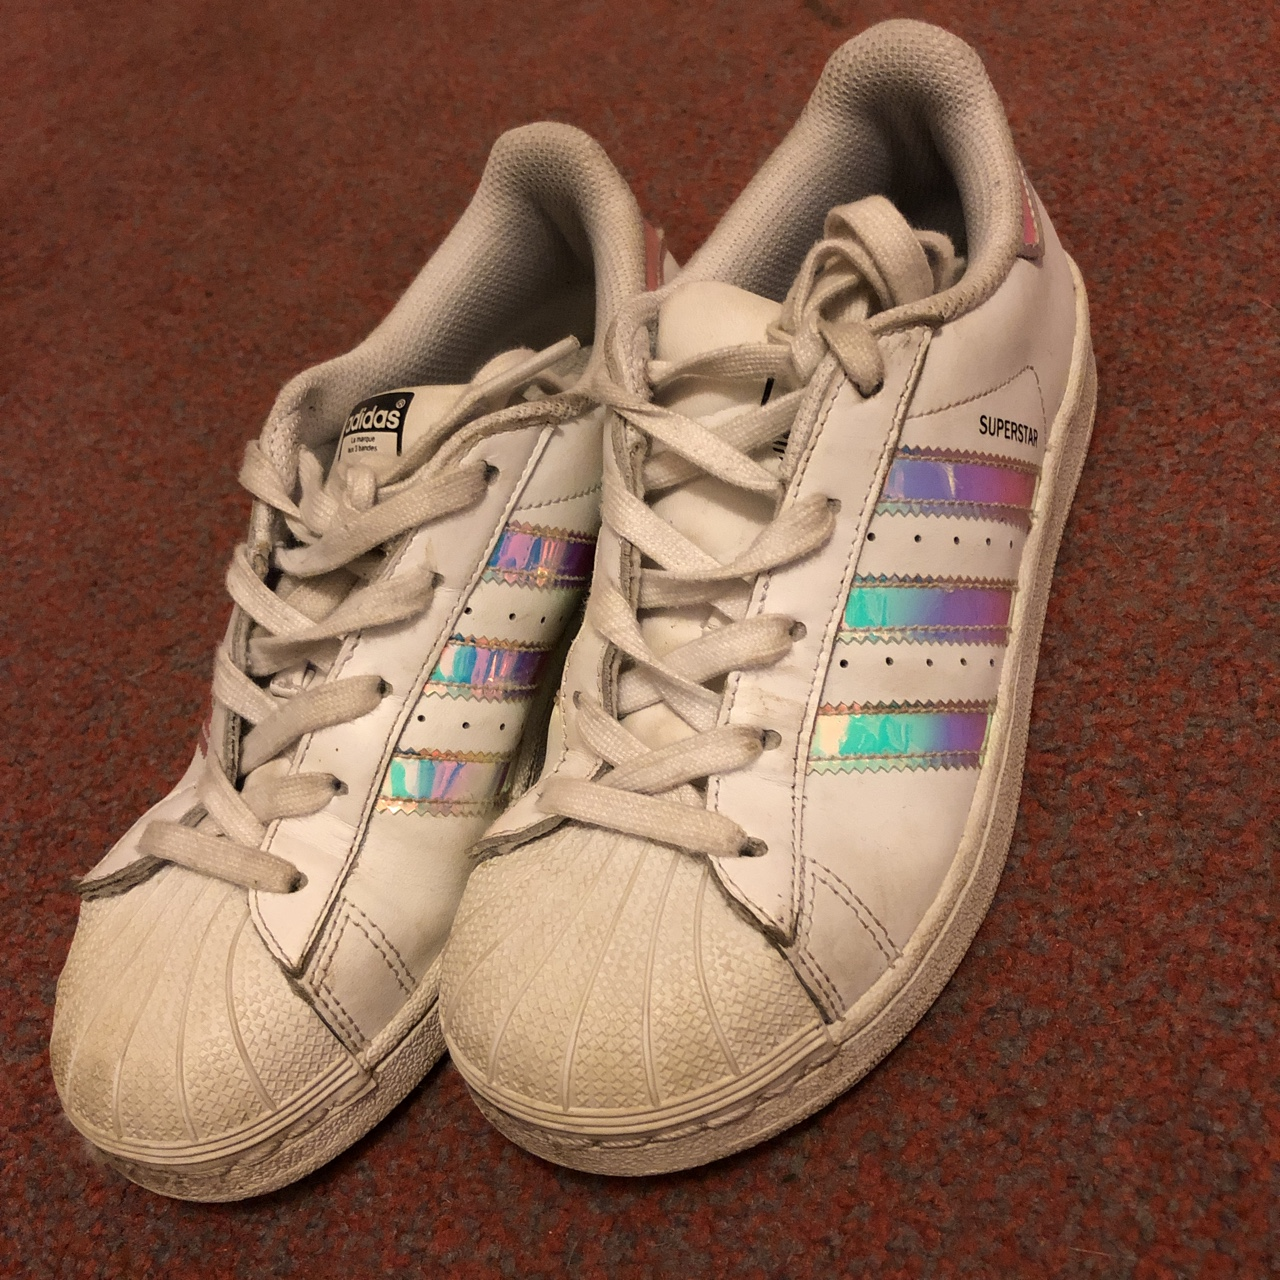 Girls Adidas Superstar trainers in size 2, They are...